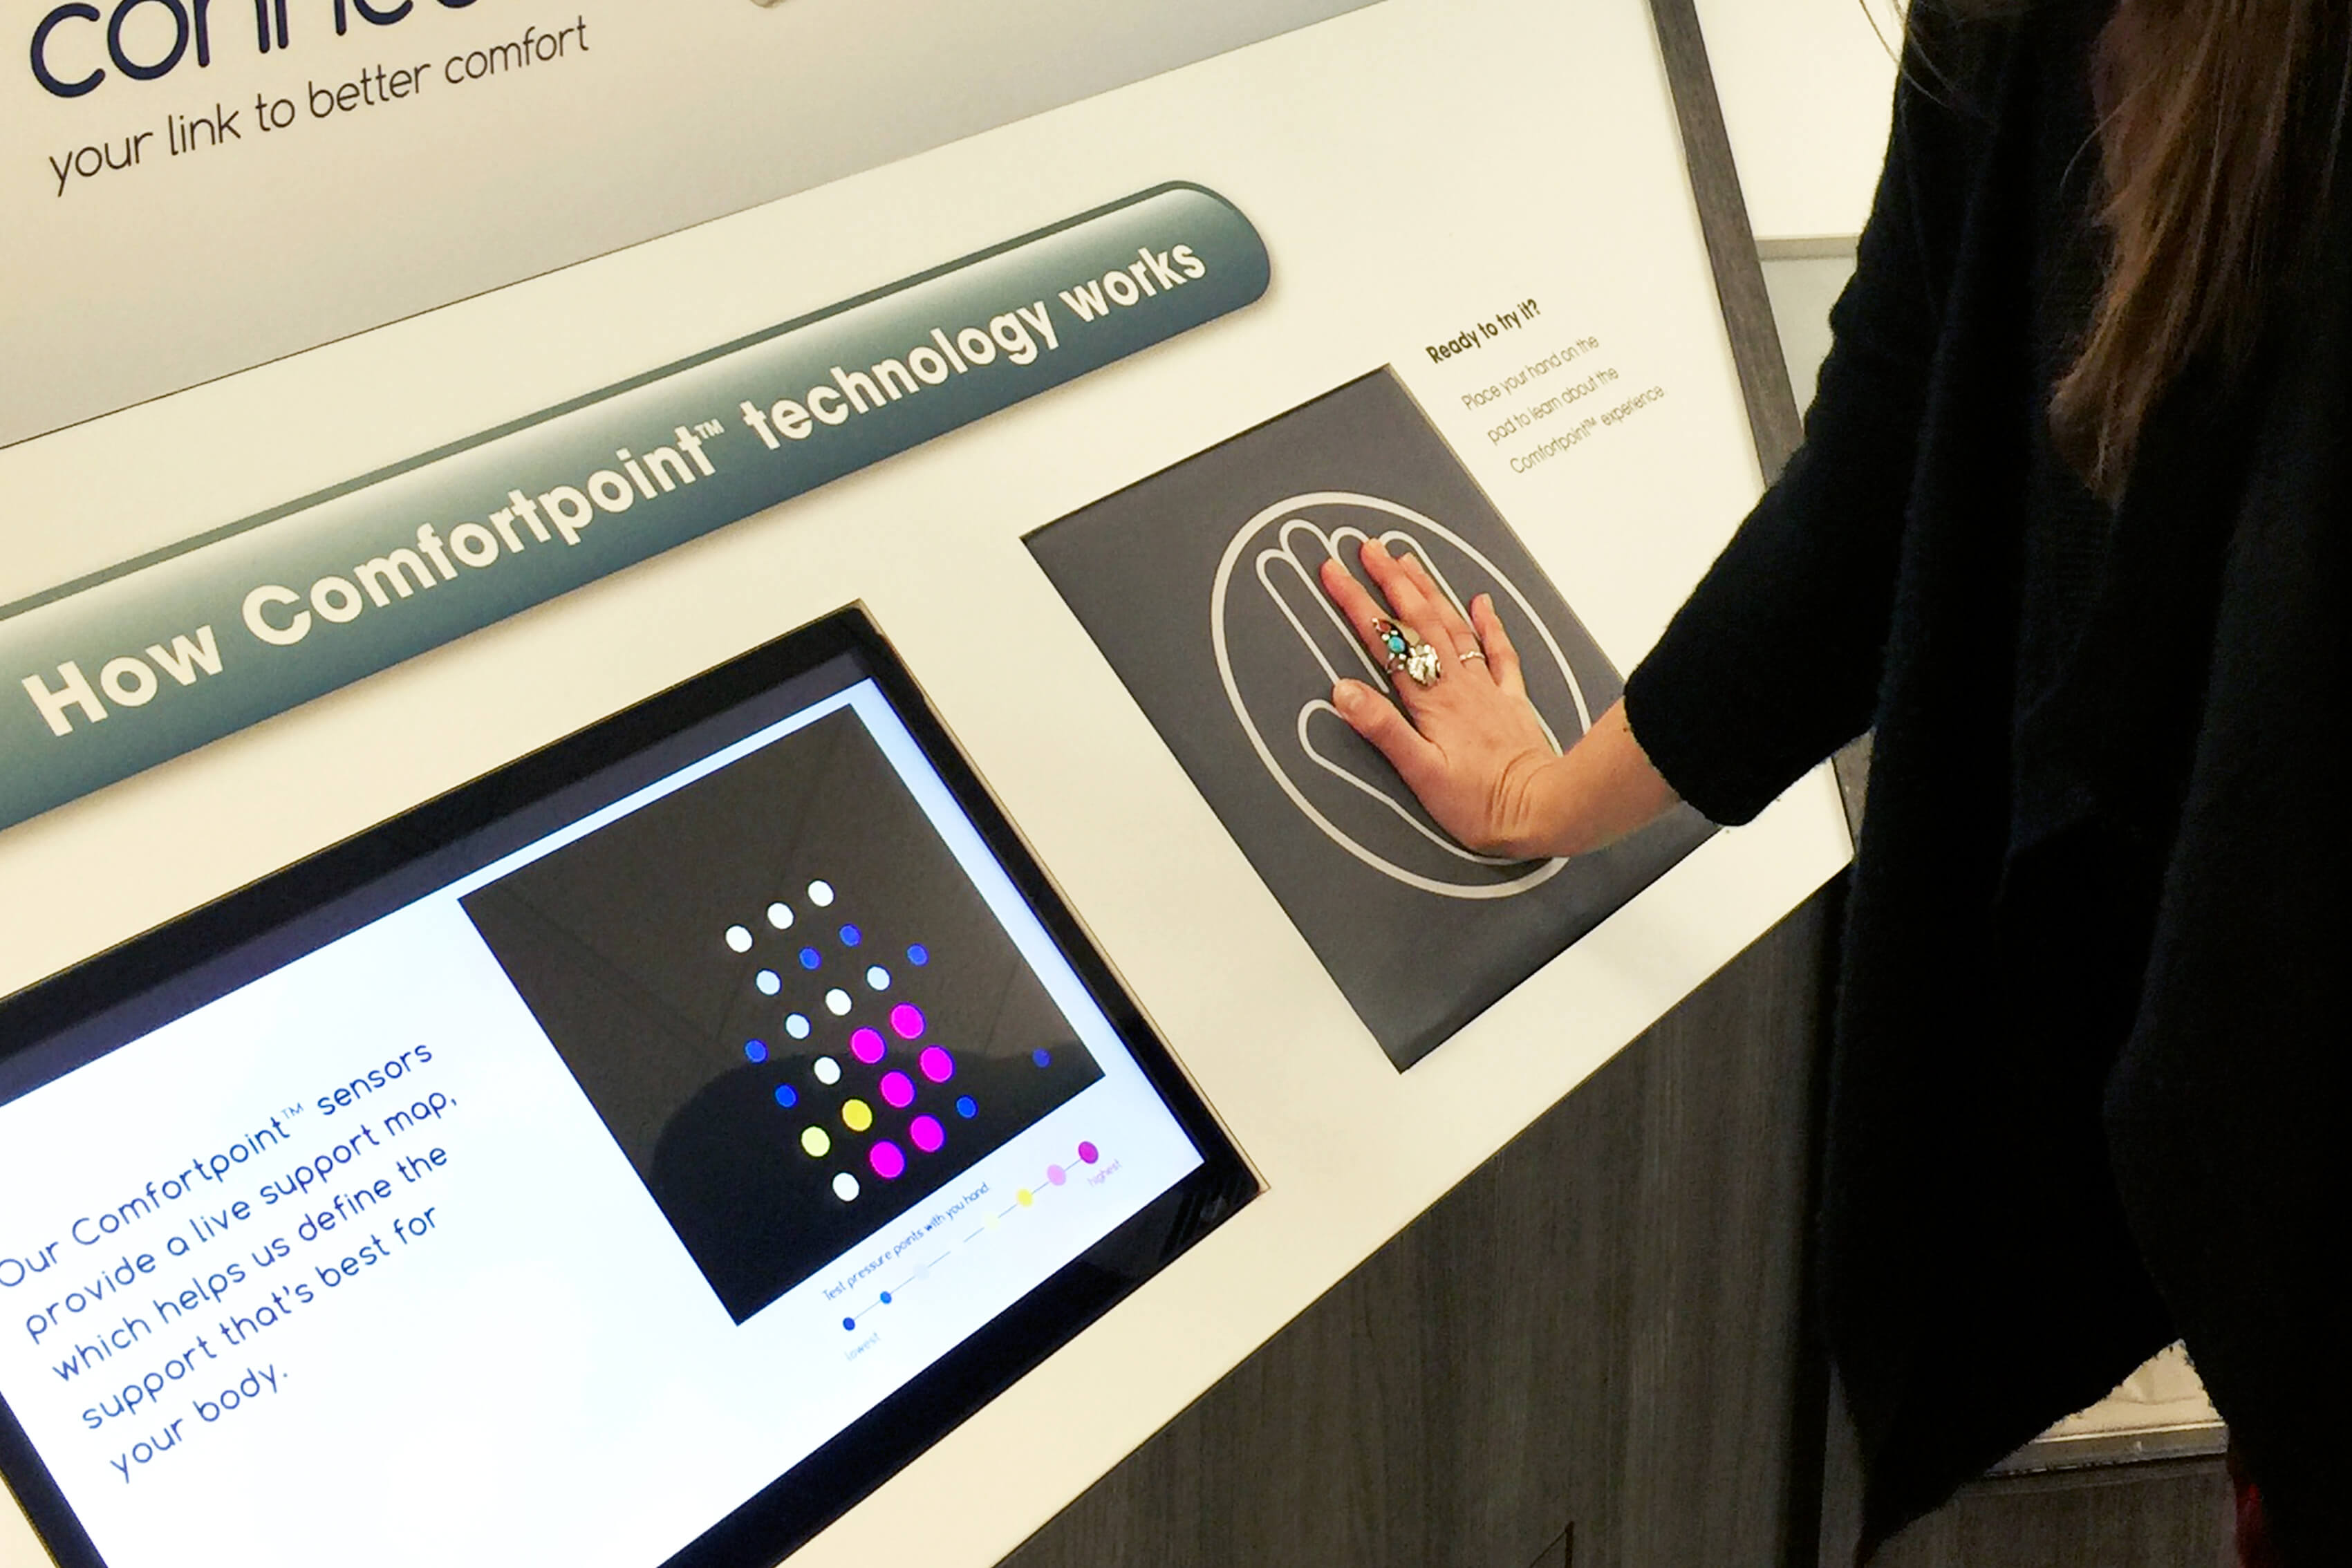 Image of woman's hand on interactive screen